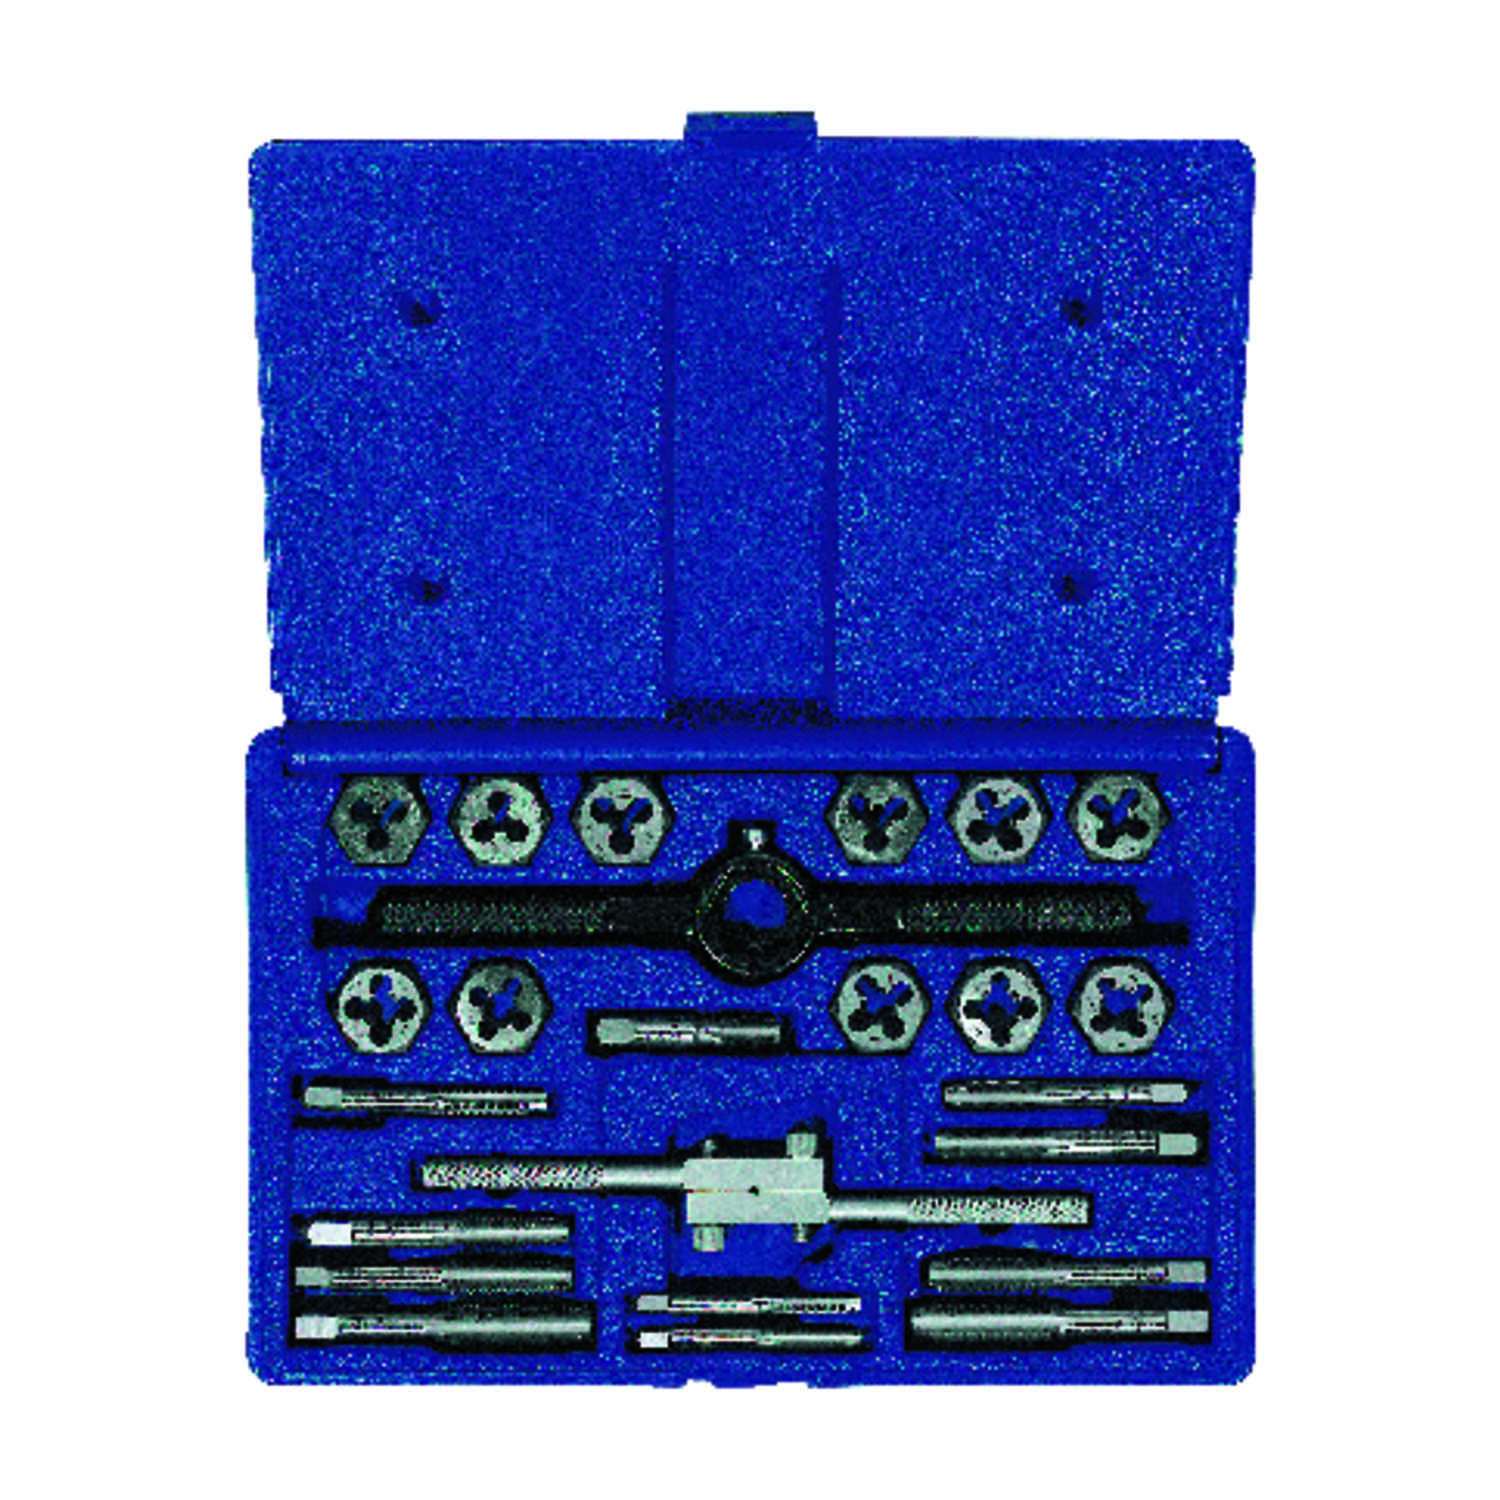 Irwin  Hanson  High Carbon Steel  SAE  Tap and Die Set  1/4 -20NC, 1/4-20NF, 5/16-8NC, 5/16-24NF, 3/